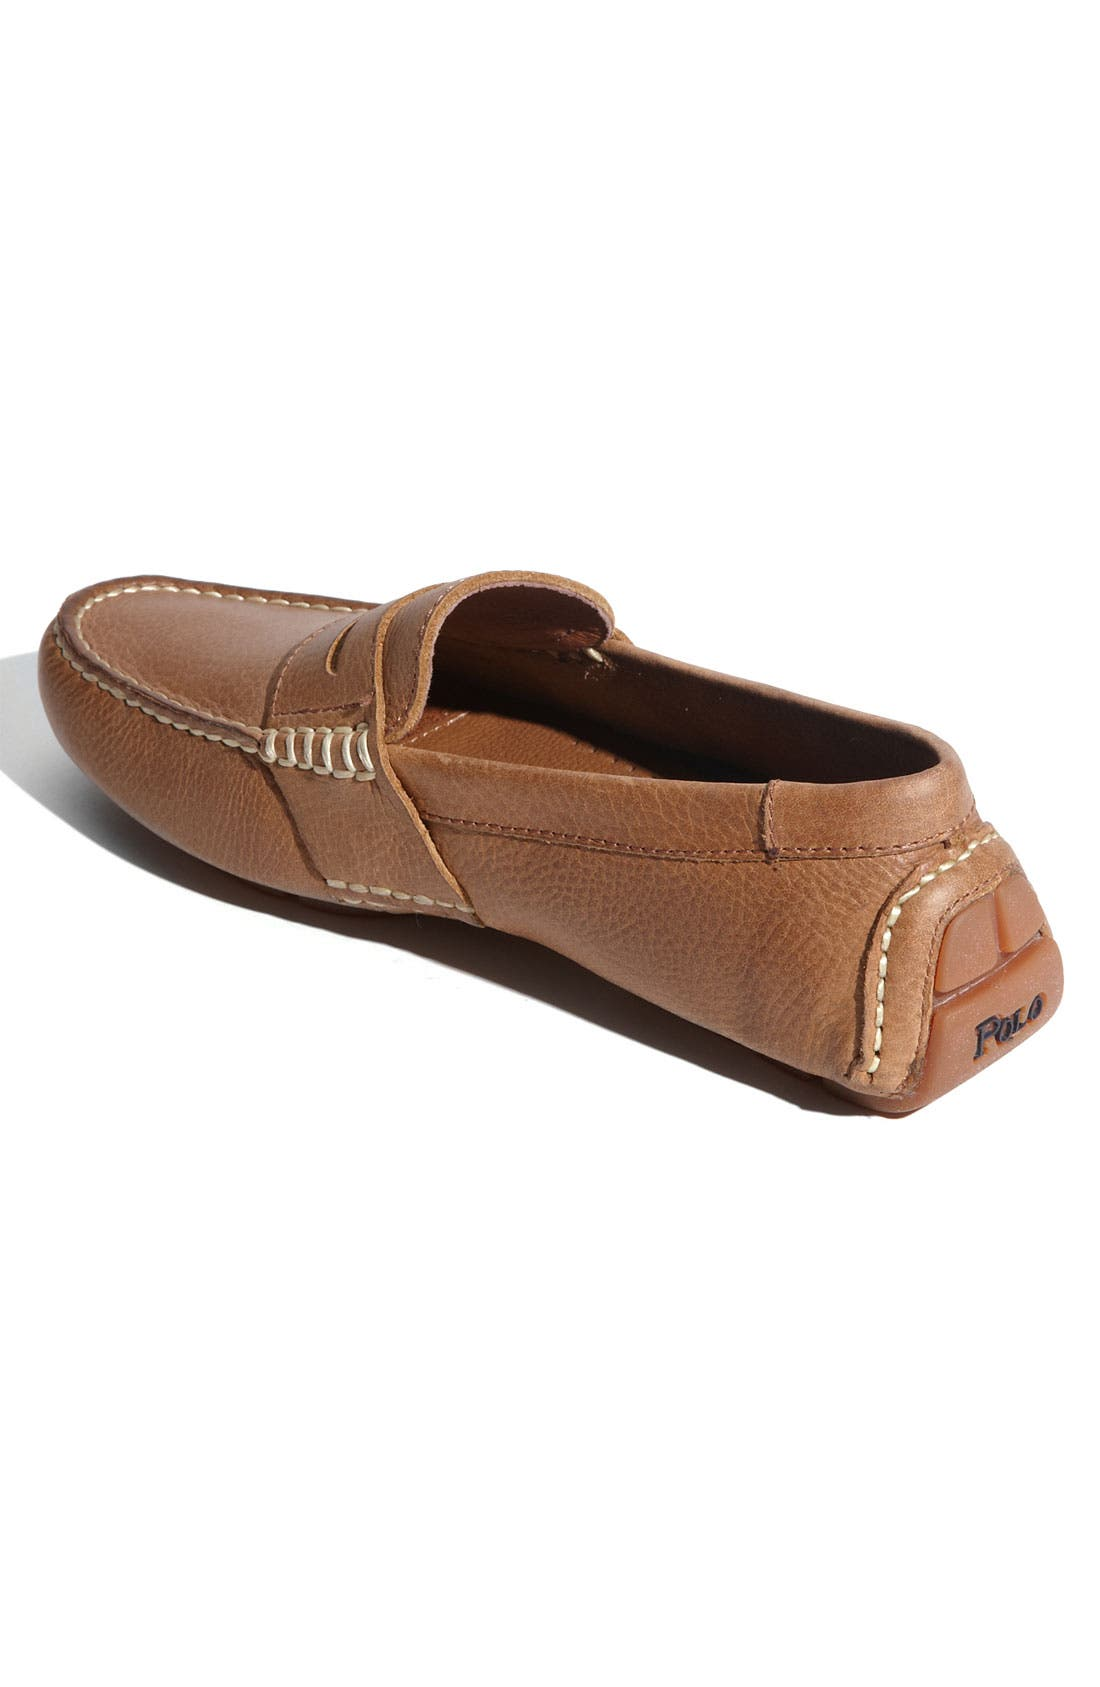 Alternate Image 3  - Polo Ralph Lauren 'Telly' Driving Loafer